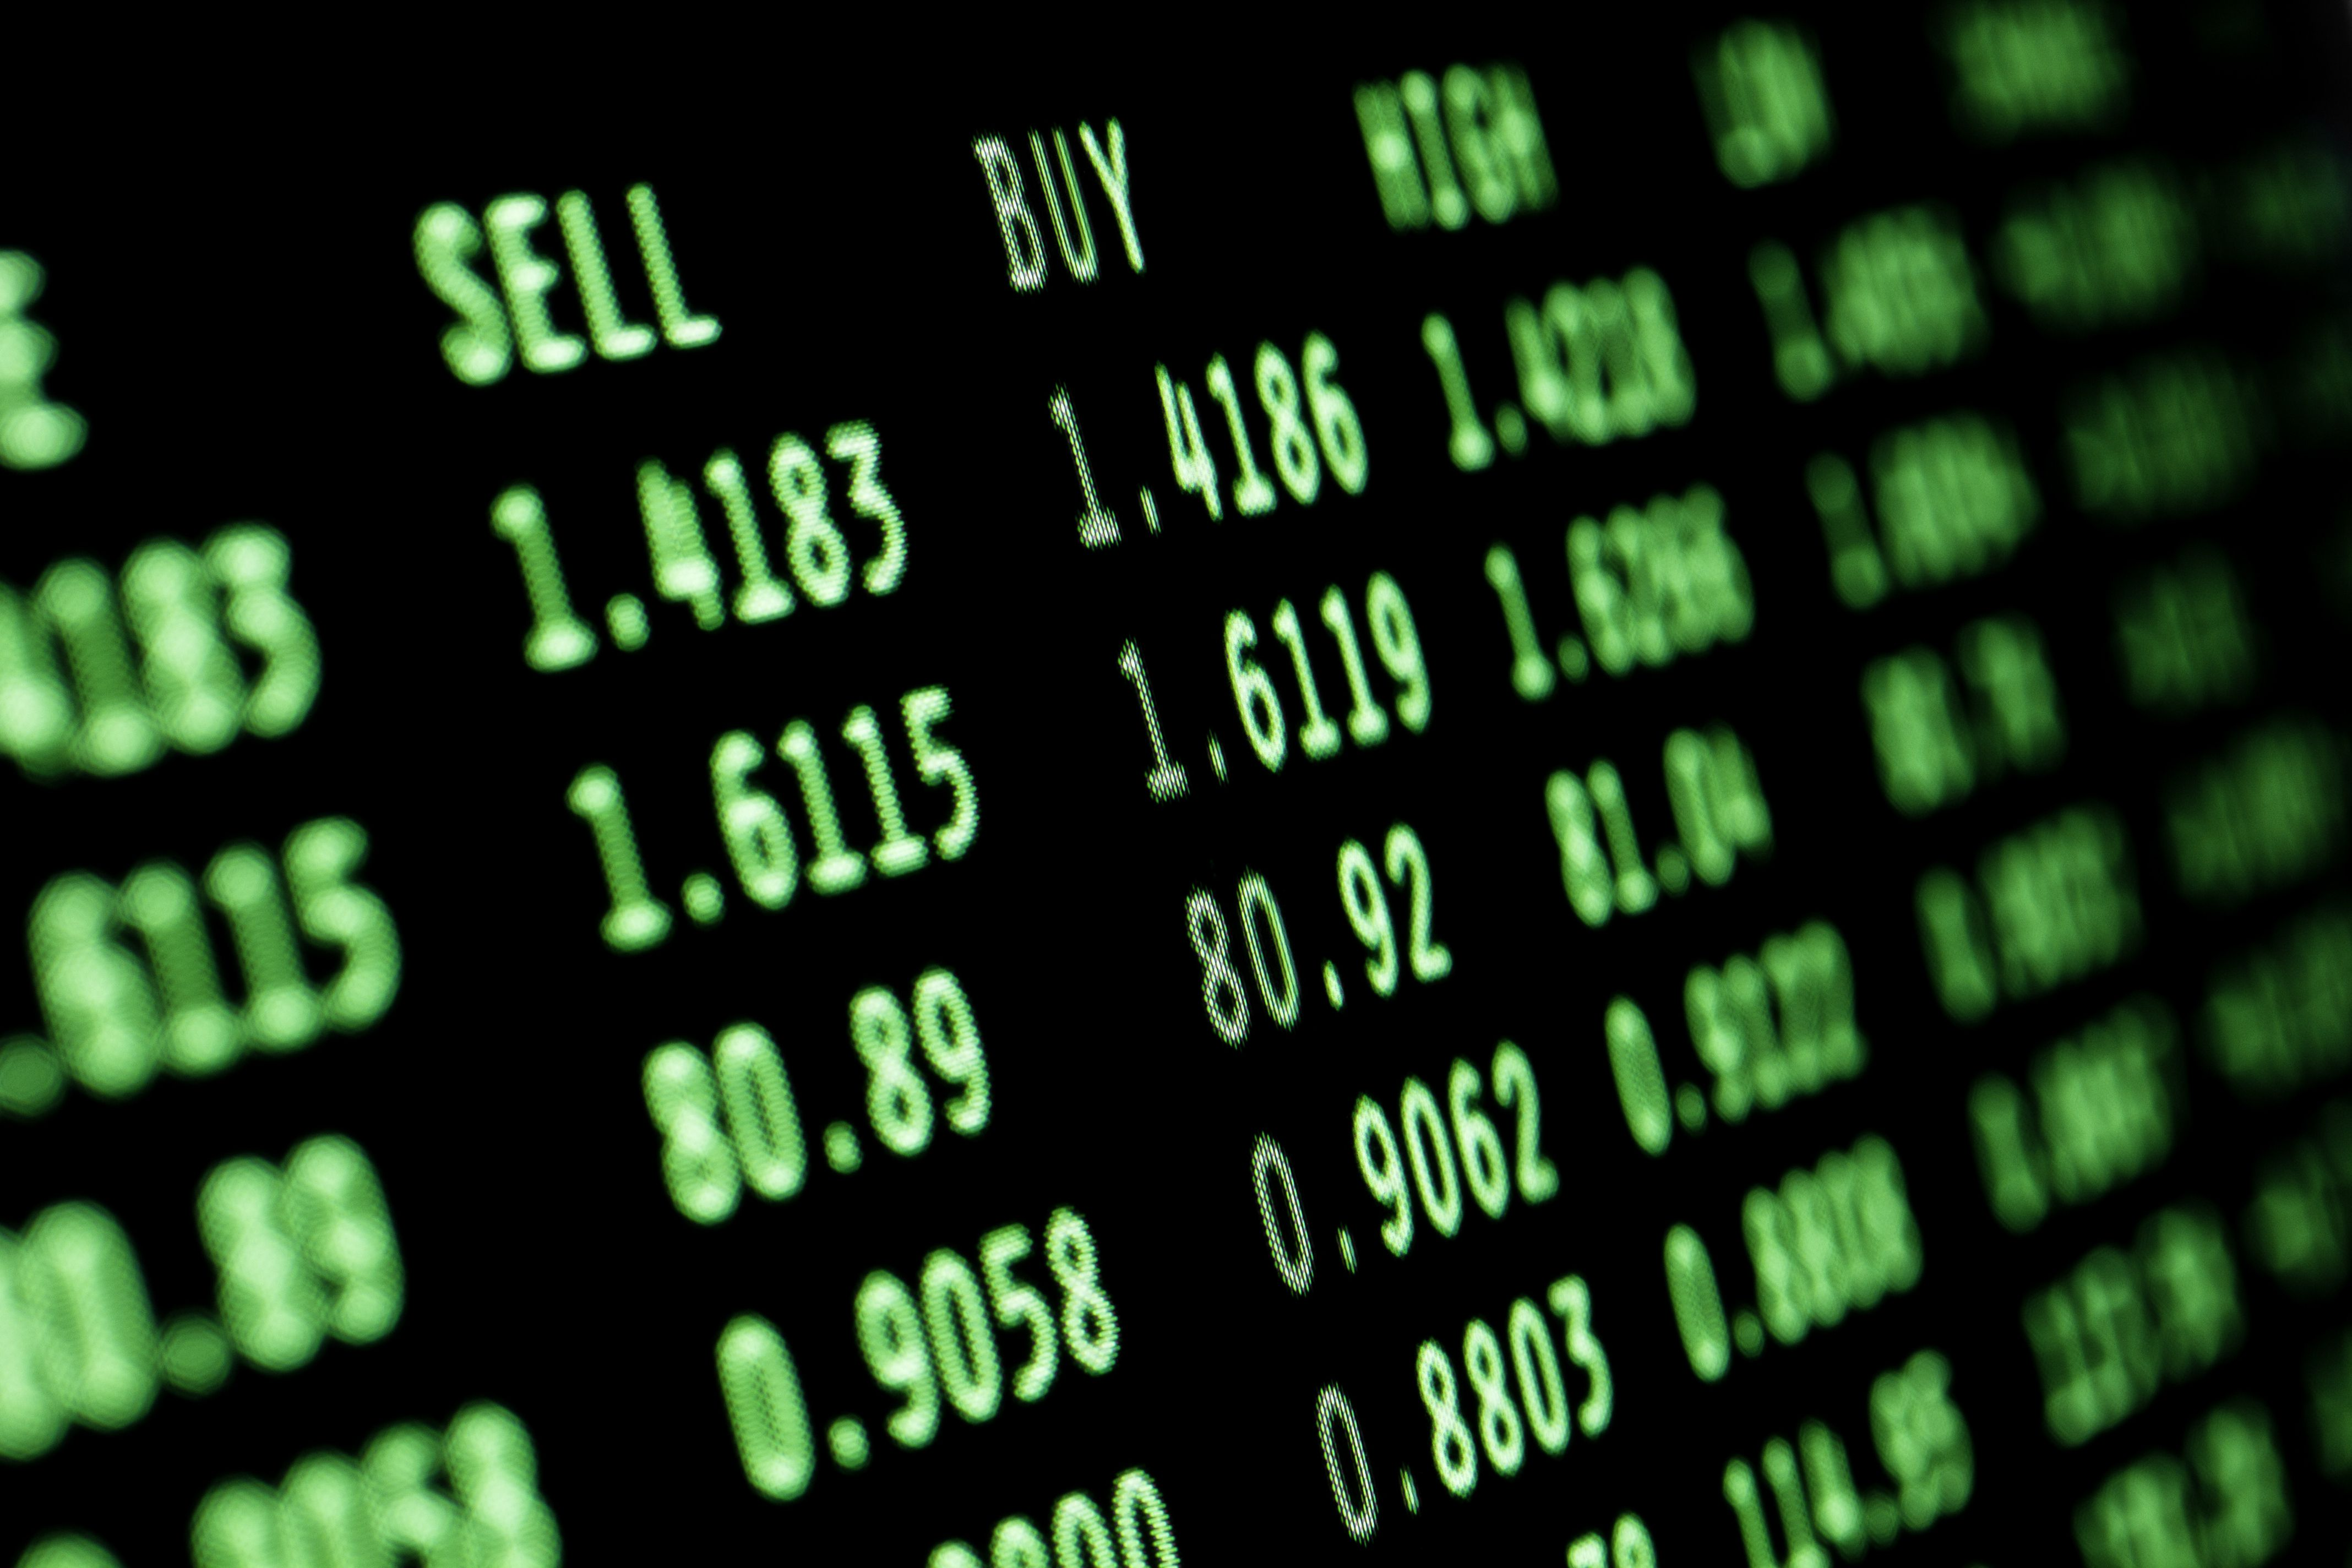 Futures Trading | Interactive Brokers